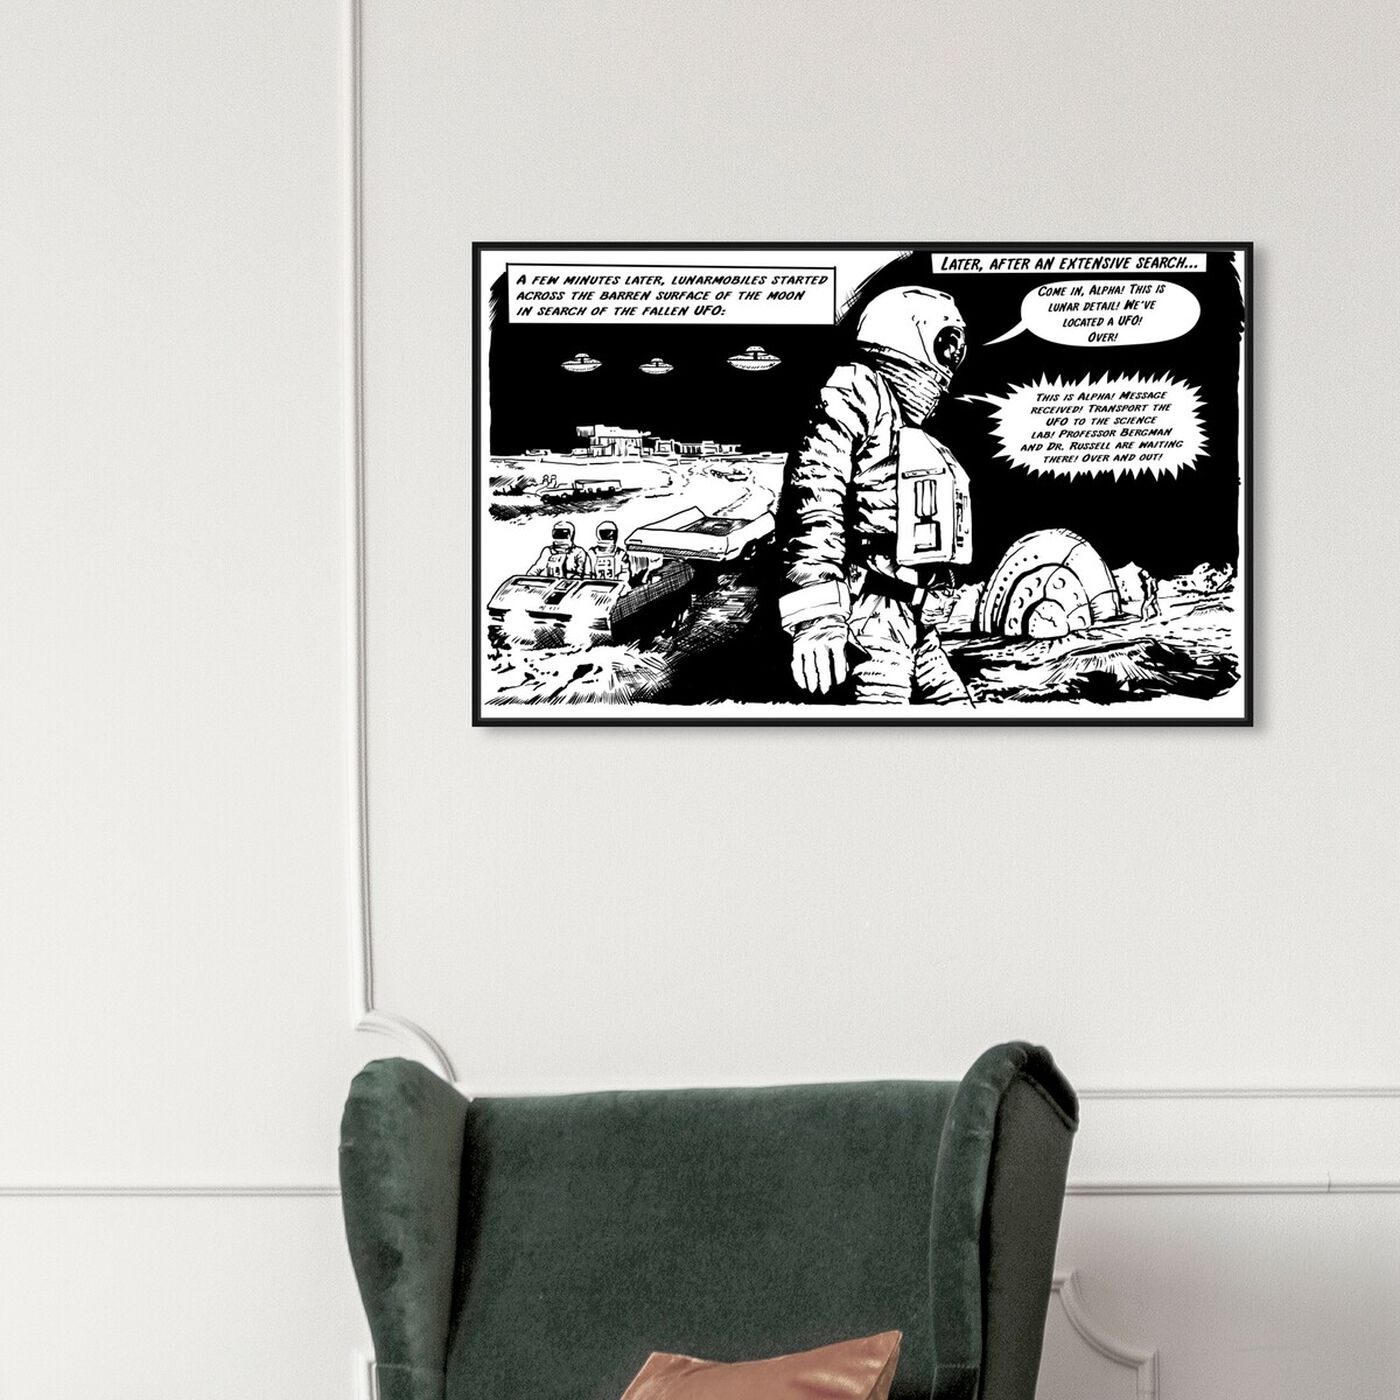 Hanging view of On The Moon featuring advertising and comics art.